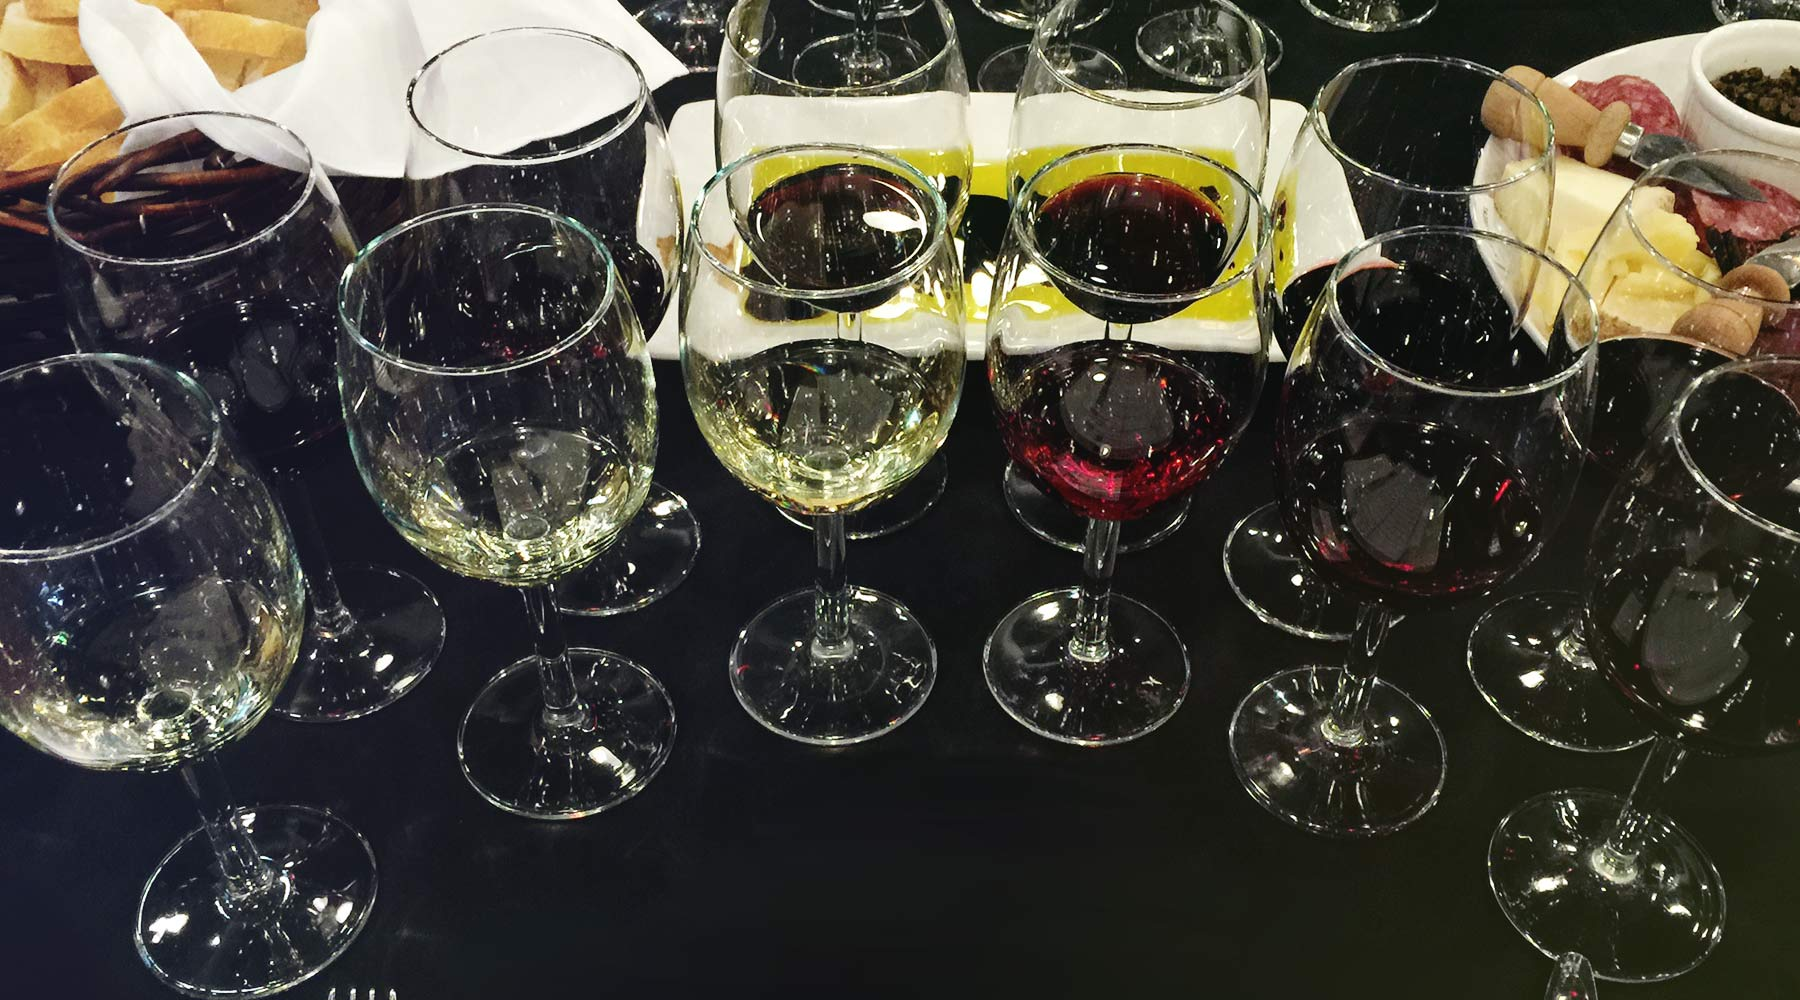 Sharpen Your Senses: An Interactive Tasting Workshop | Just Wine